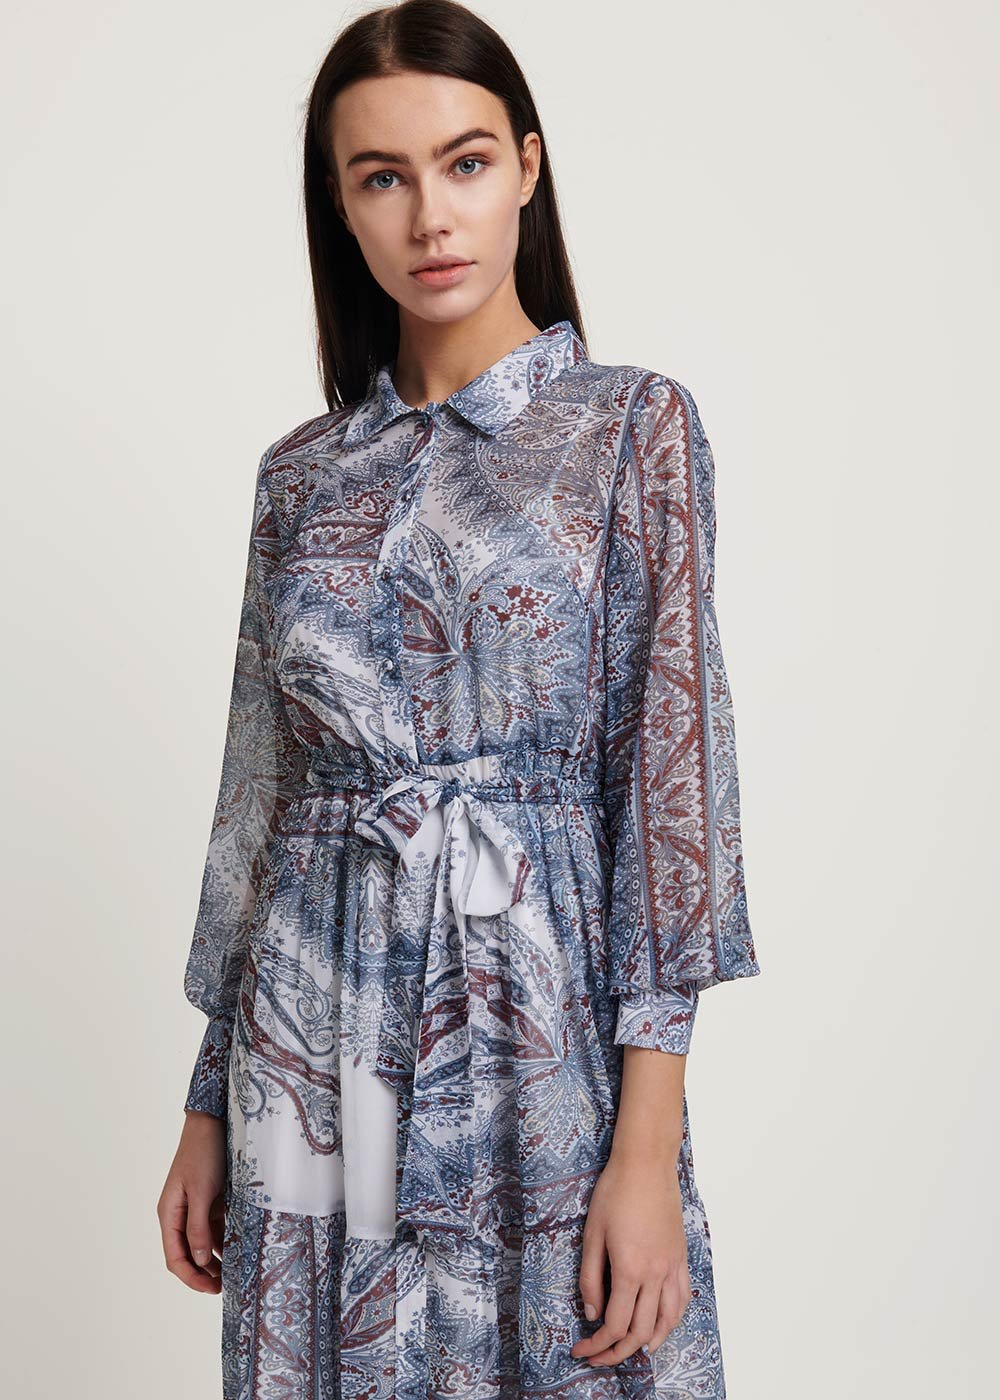 Adriano patterned dress - White\ Avion\ Fantasia - Woman